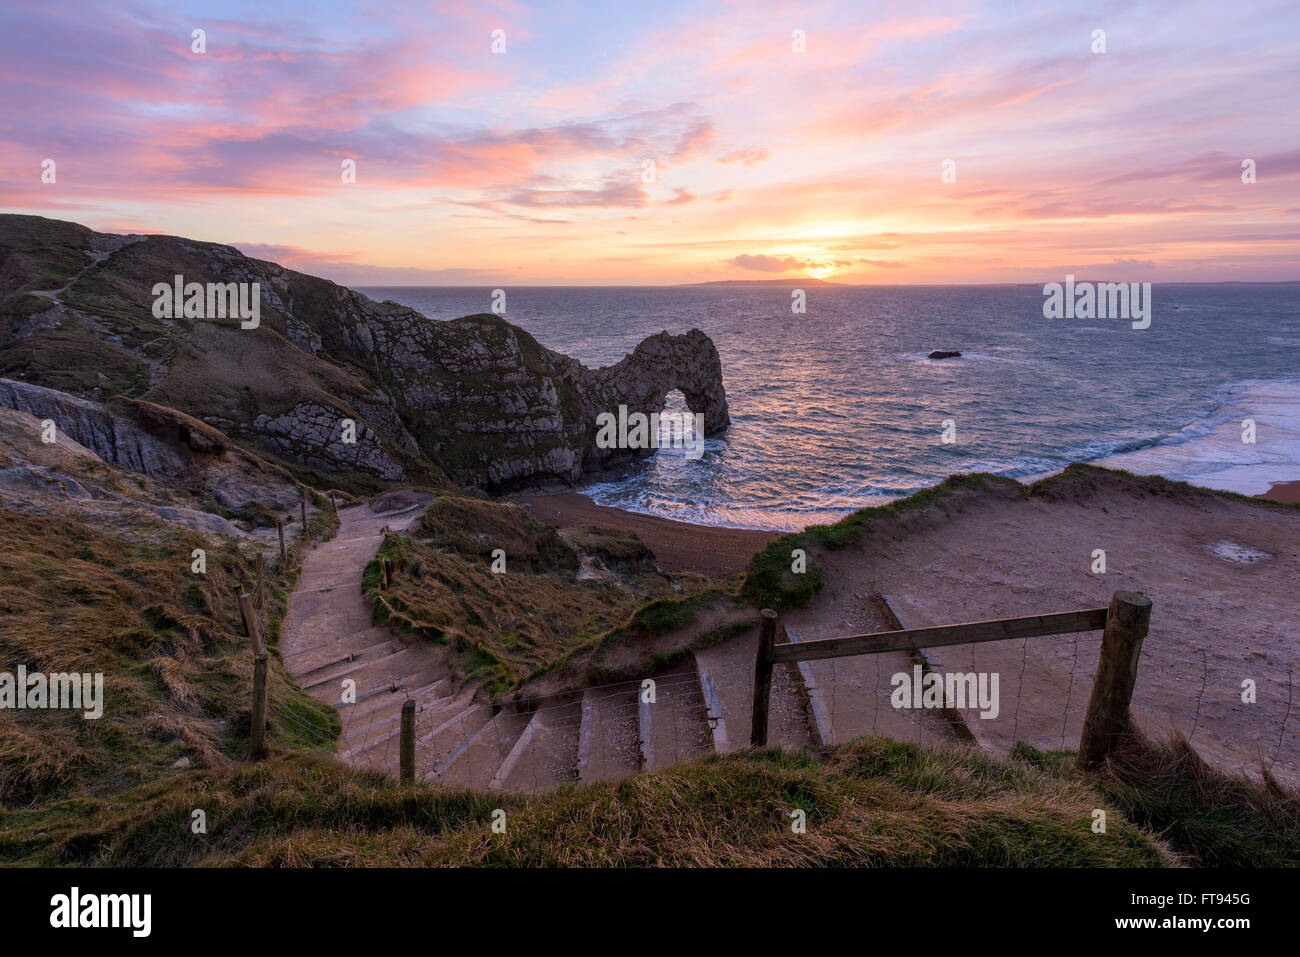 A view of Durdle Door in Dorset. Stock Photo